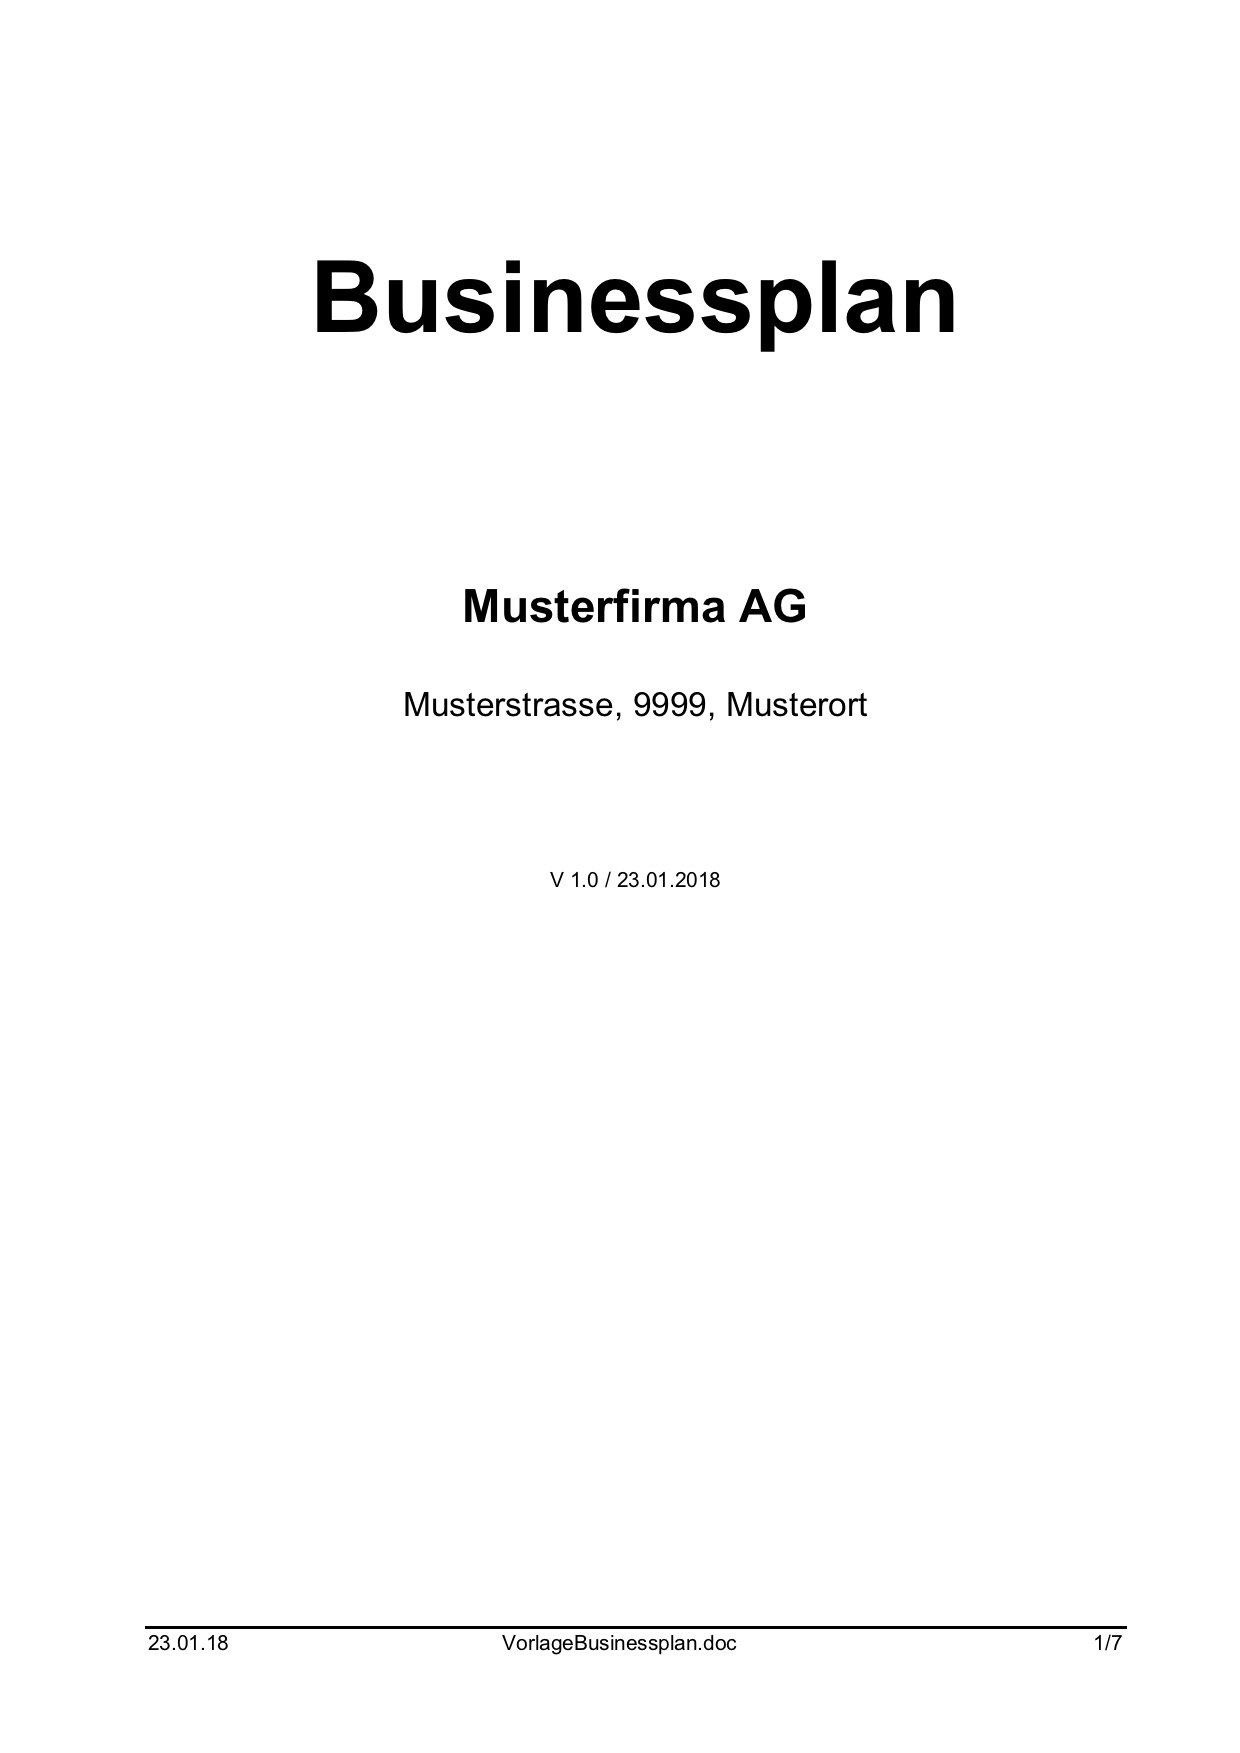 businessplan vorlage word format muster